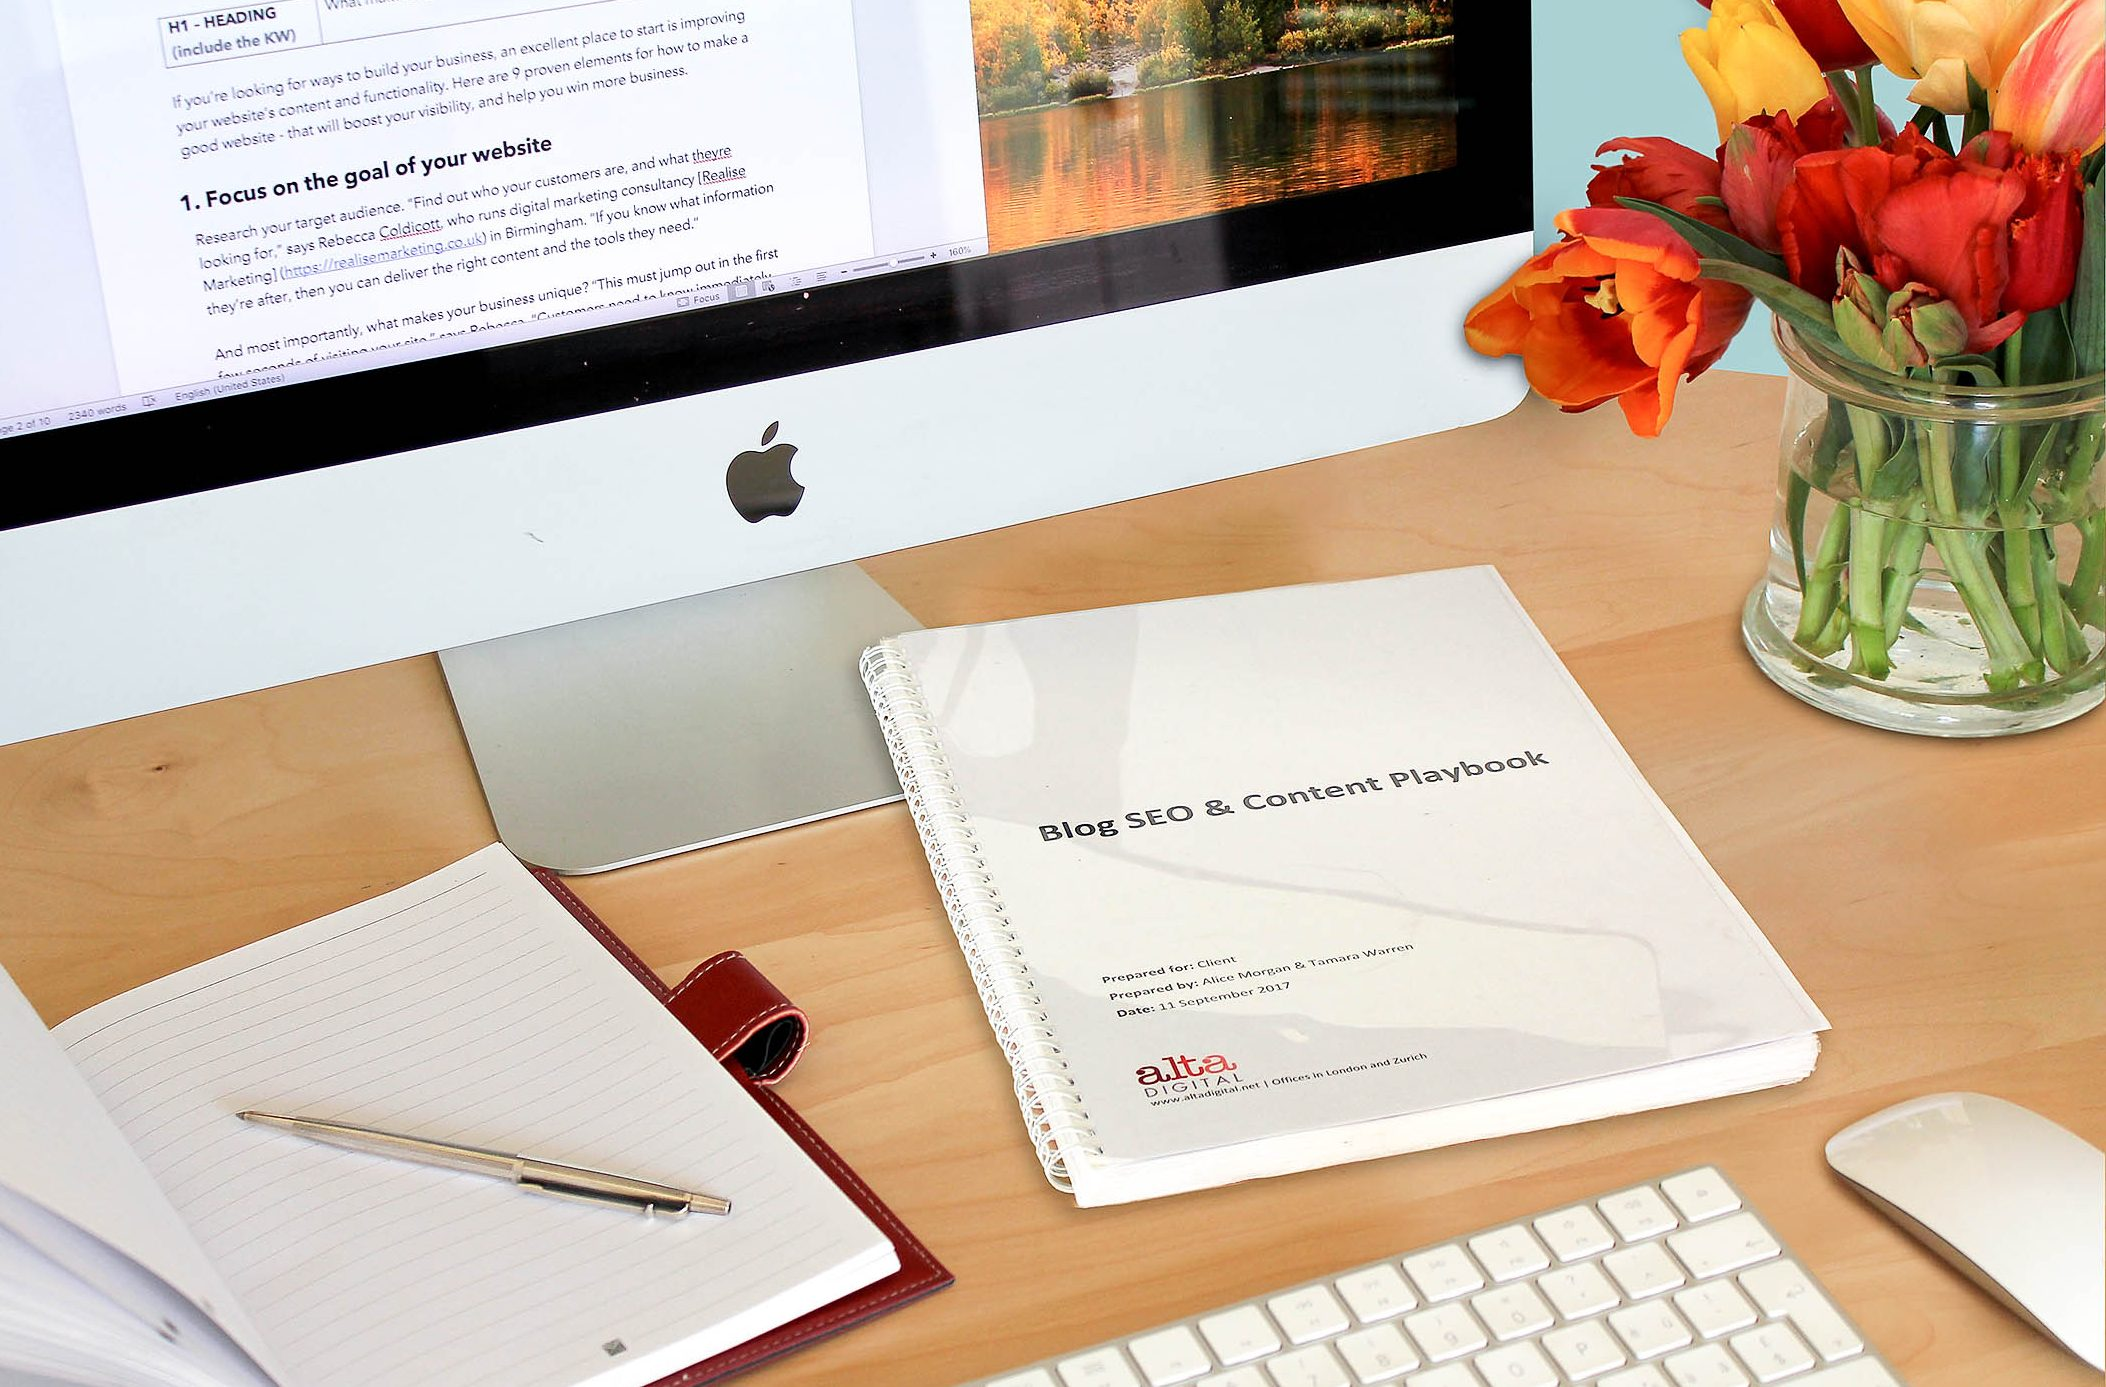 SEO and content playbook on desk